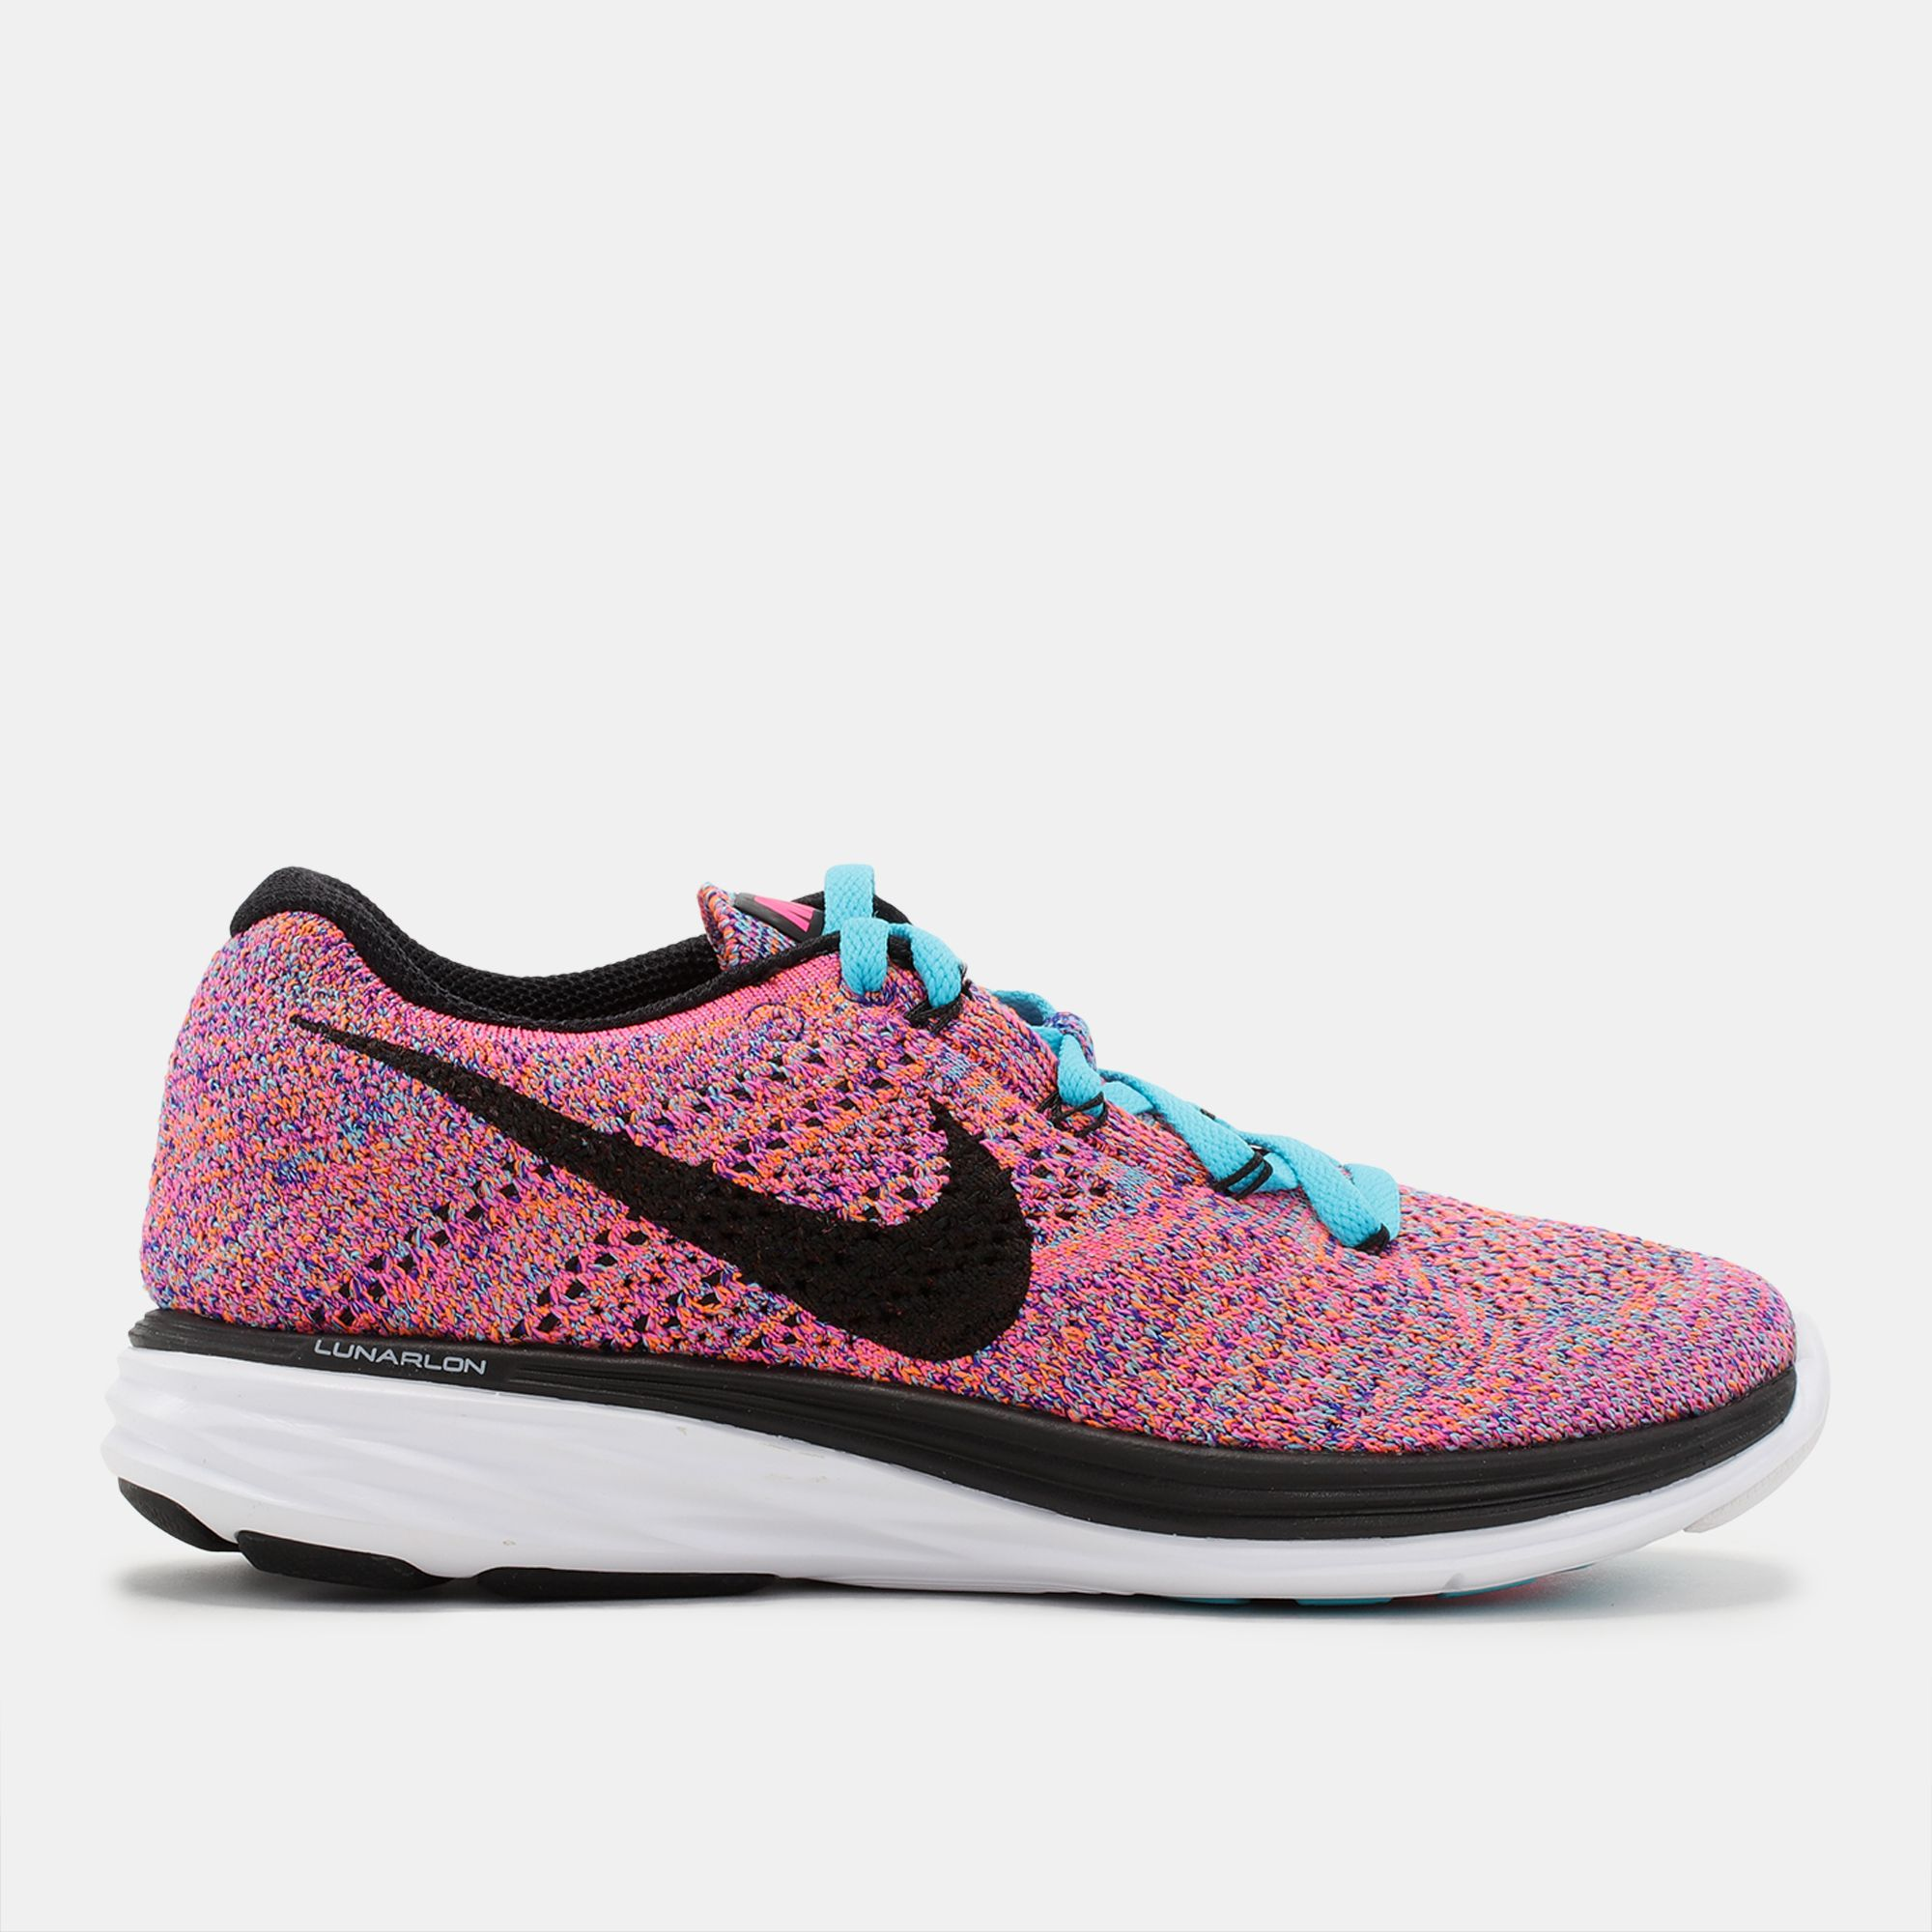 8b126cdb3e1c Shop Multi Nike Woven Flyknit Lunar 3 Running Shoe for Womens by ...